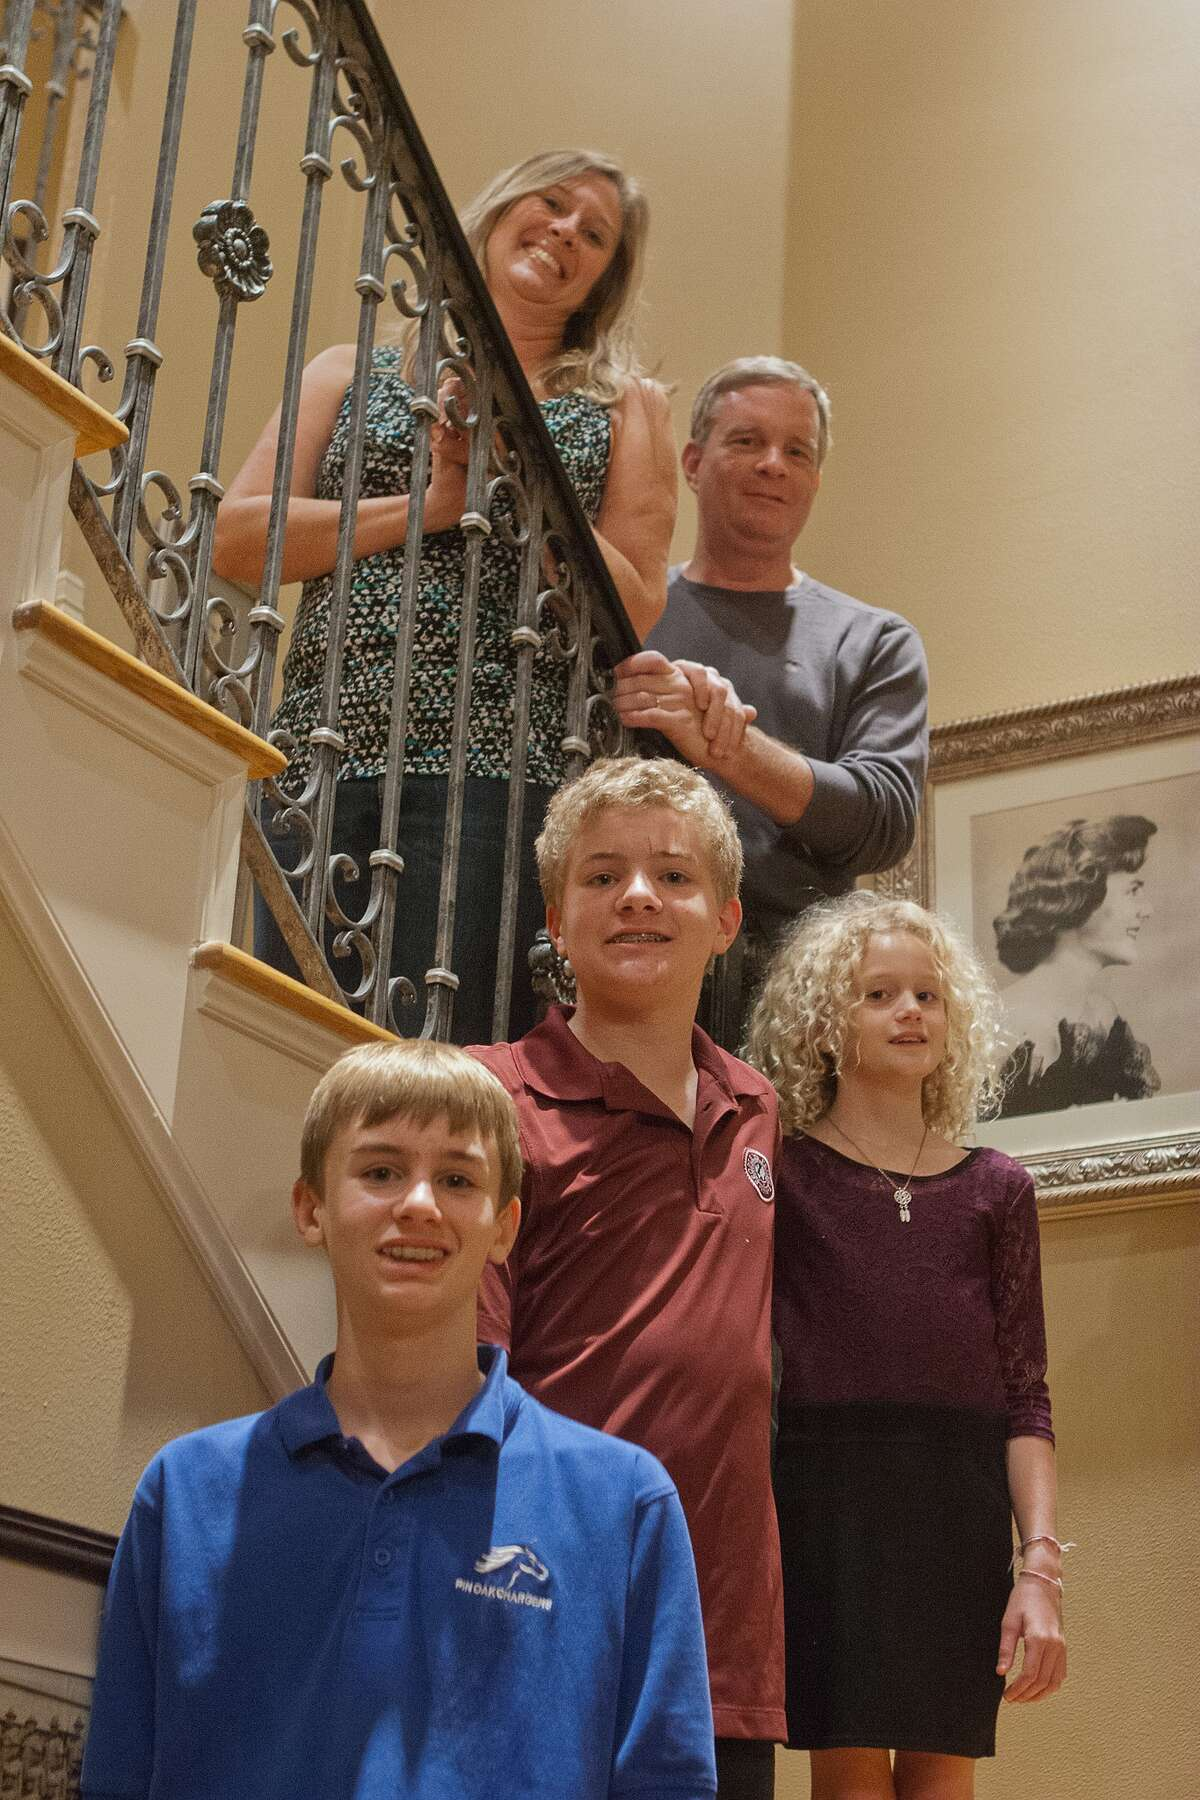 Lagenia and David Clark of Bellaire are spearheading a gala to raise funds to research giant axonal neuropathy, a rare disease that affects two of their children, Justin, center, and Lexi, right. Their other child, Jared, has run triathlons to raise research funds.